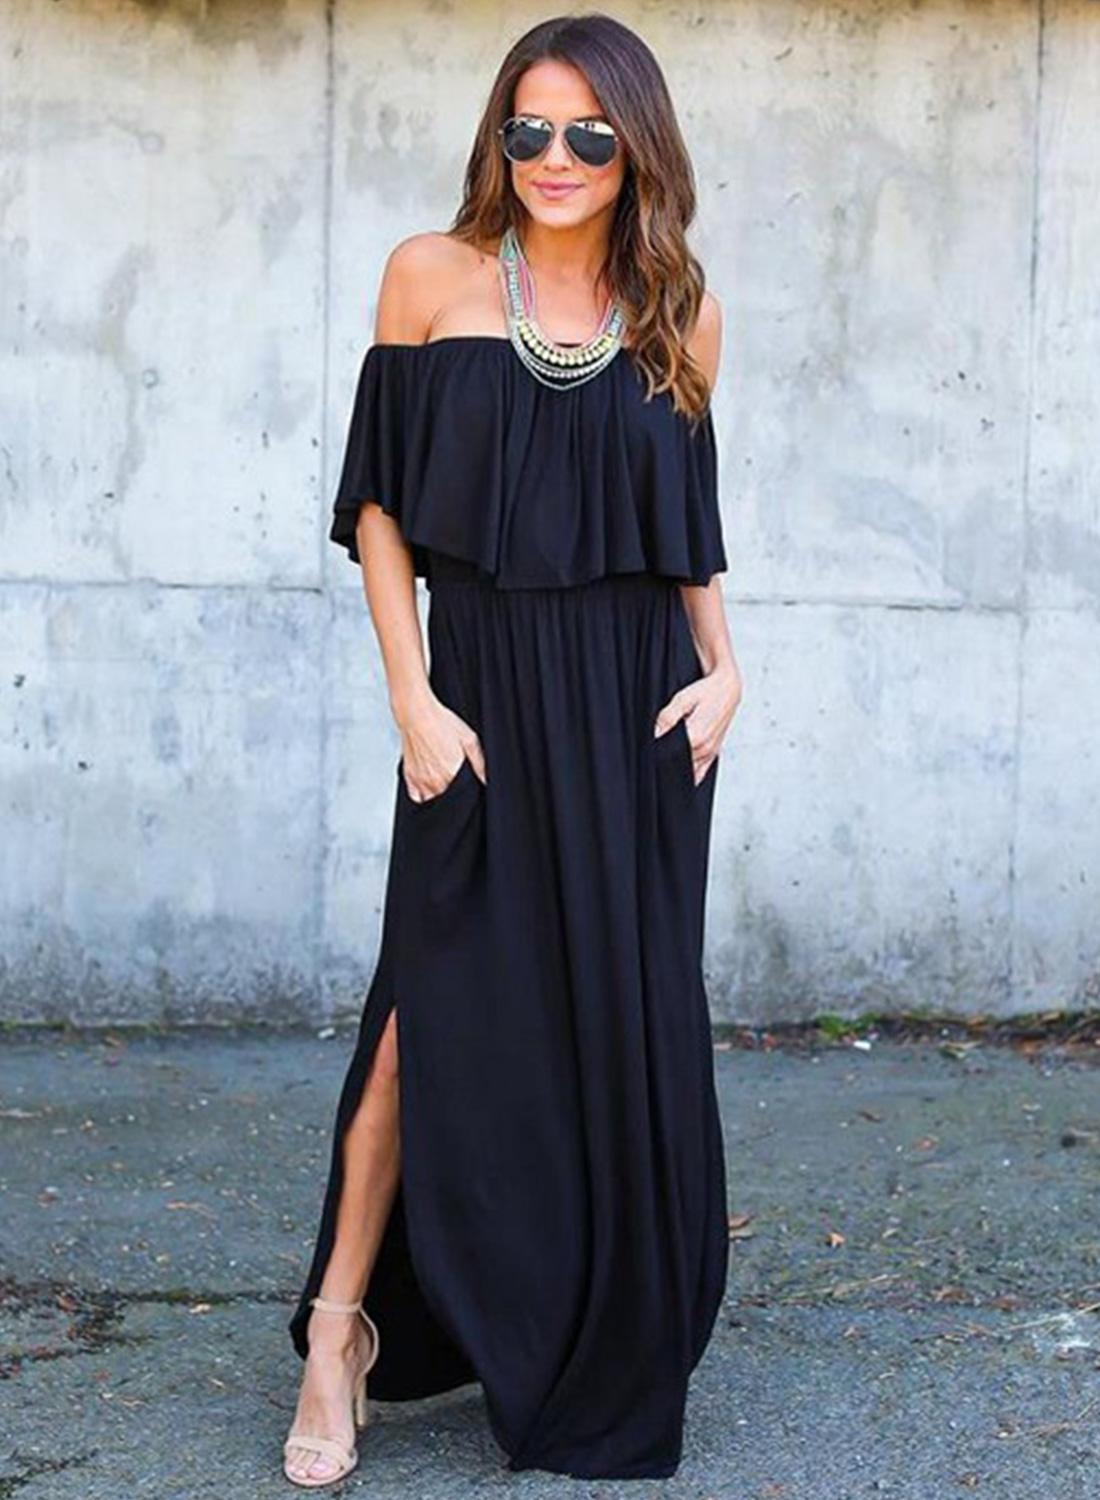 dc88b837f639 Loading zoom. Women's Boho off Shoulder Short Sleeve Ruffle Solid Maxi Dress  with Pockets ...